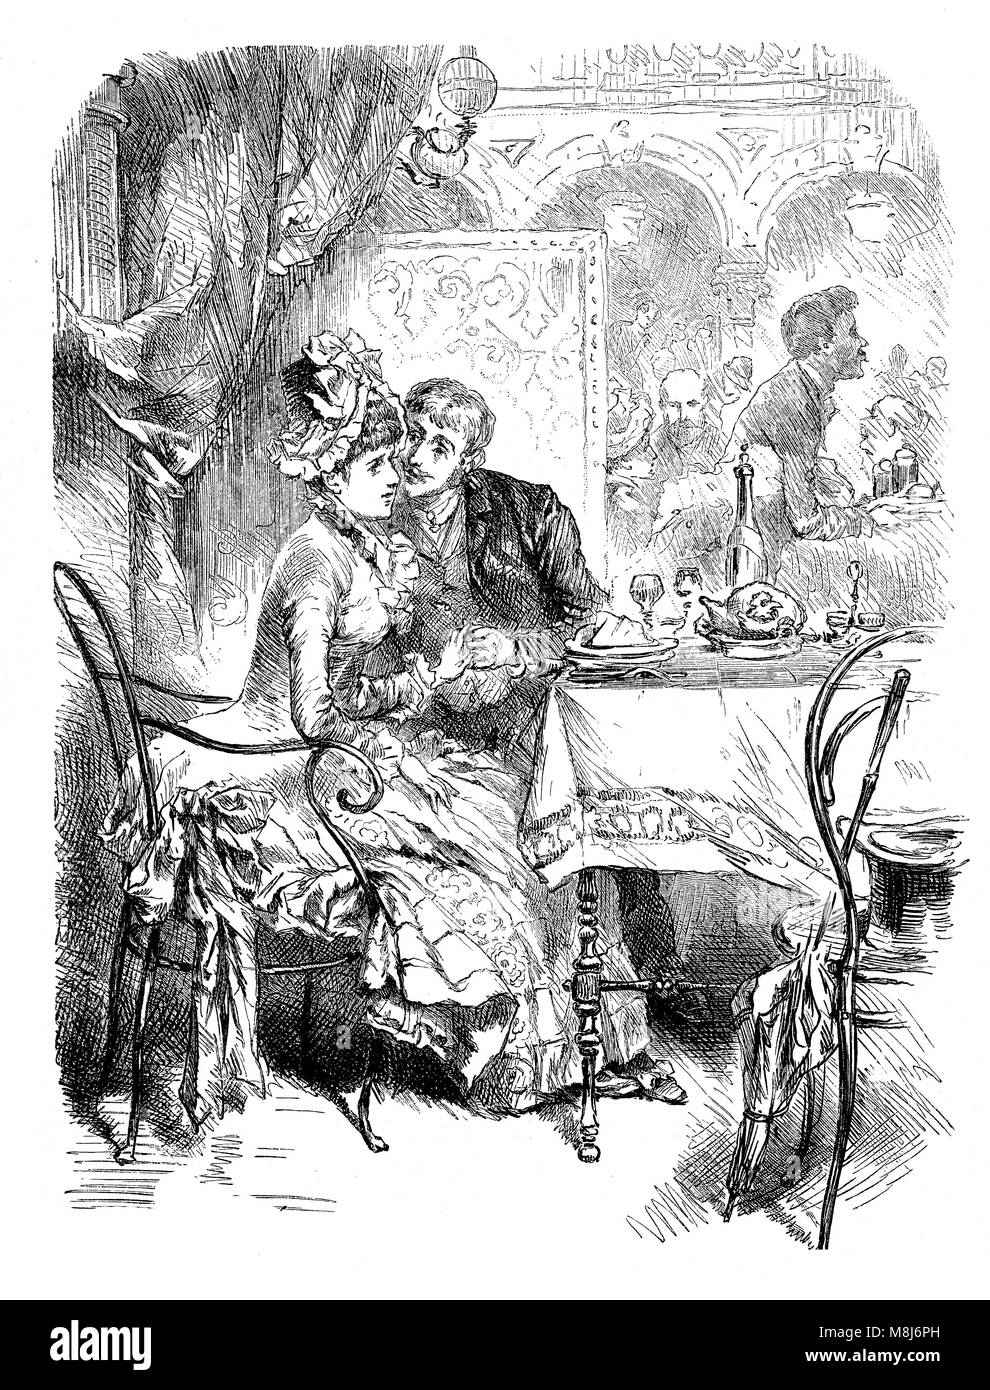 Romance at the restaurant: young man courting a shy girl in a booth, vintage engraving - Stock Image